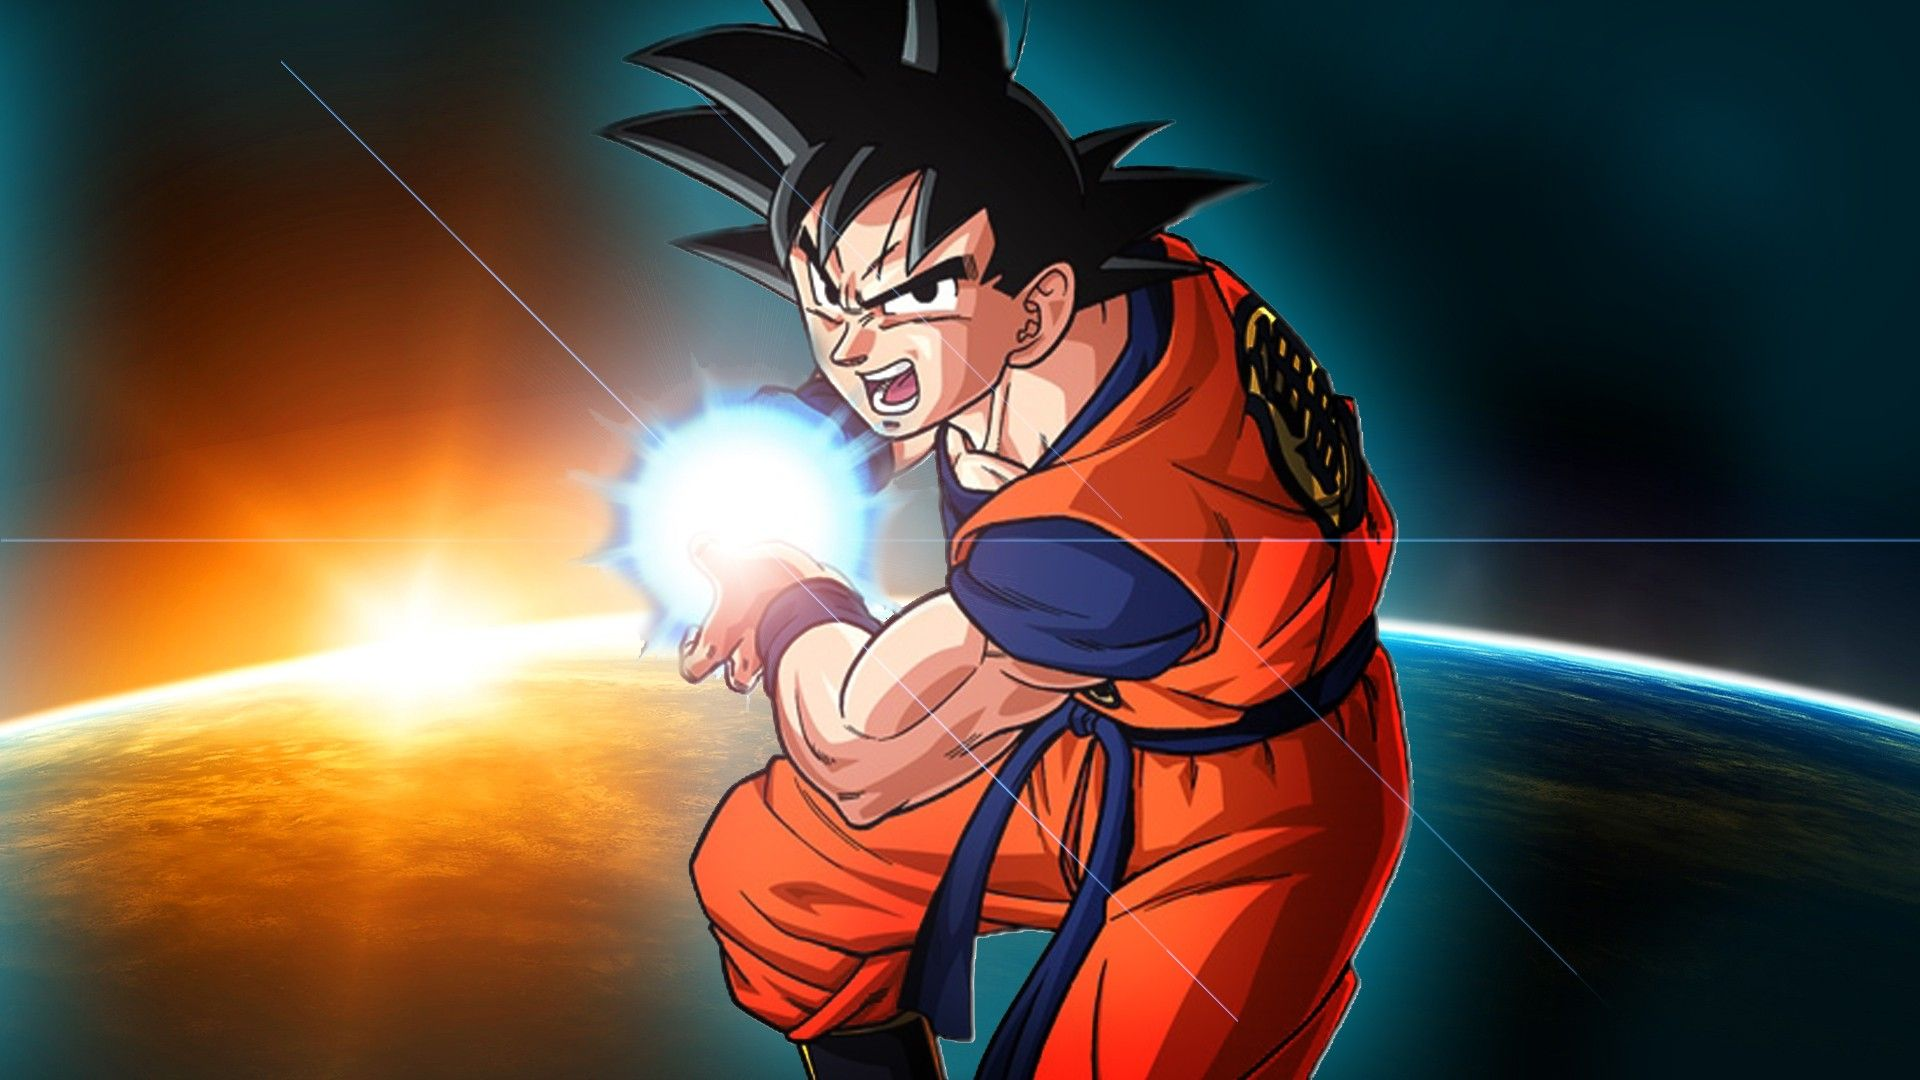 Dragon Ball Z 3d Wallpaper For Android